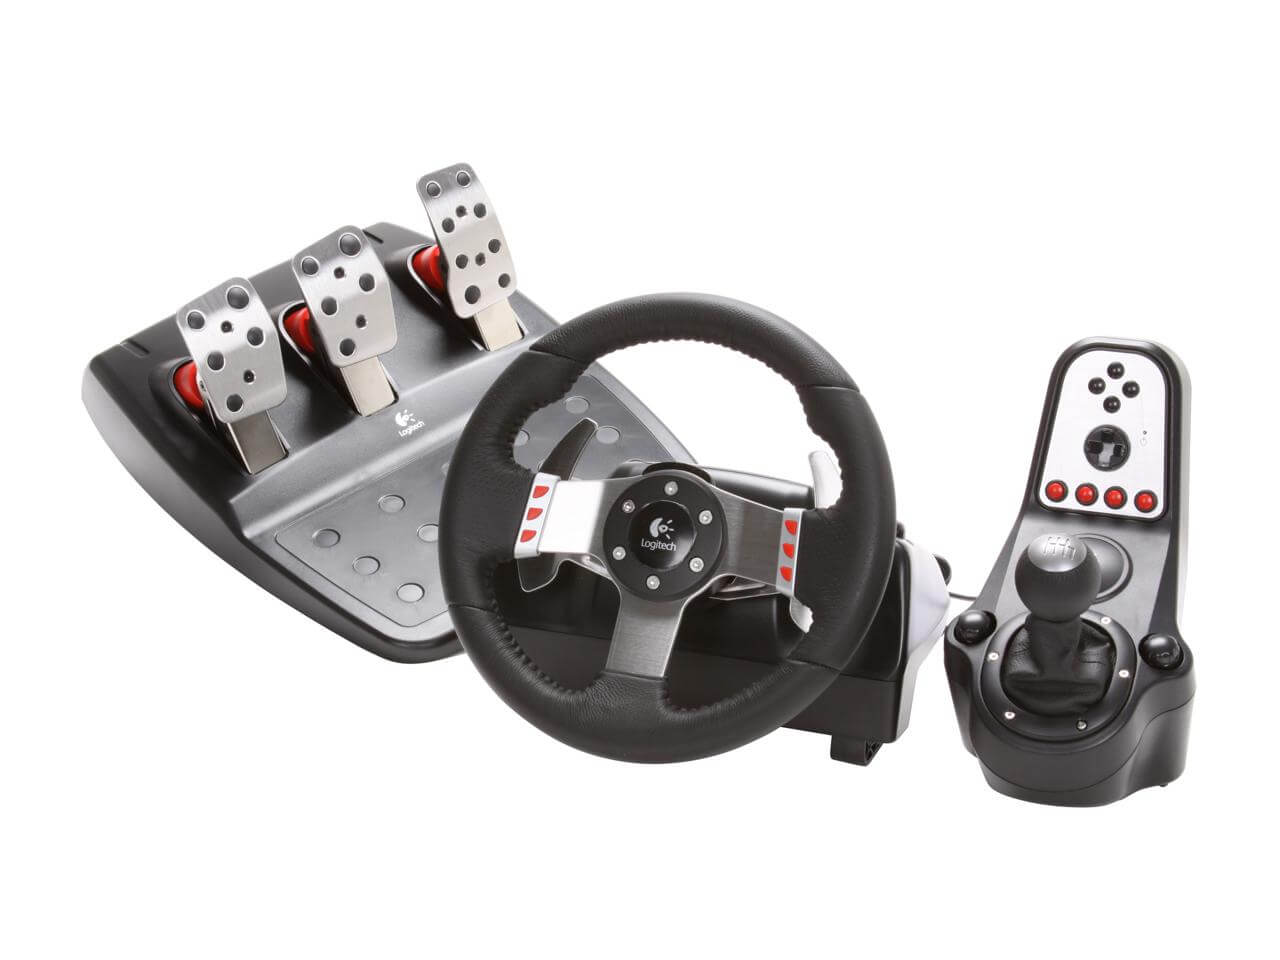 Logitech g27 Racing Wheel - product review